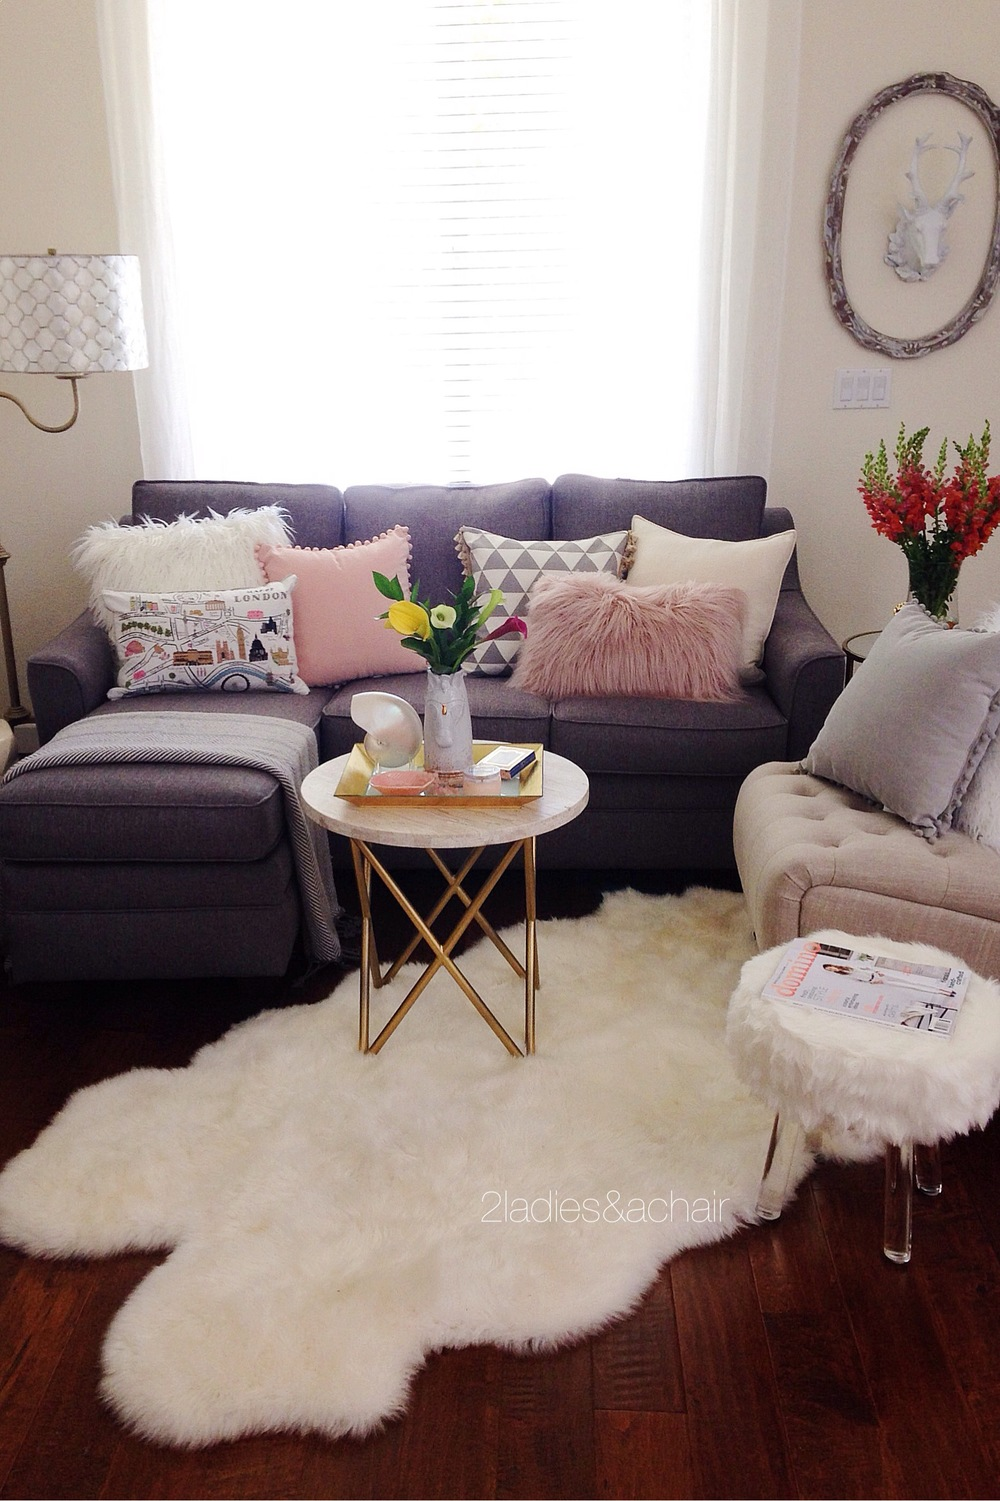 Iu0027m Obsessed With Throw Pillows! It All Started When I Was A Young Girl And  Begged My Mom To Make Euro Sized White Faux Sheepskin Throw Pillows For My  ...